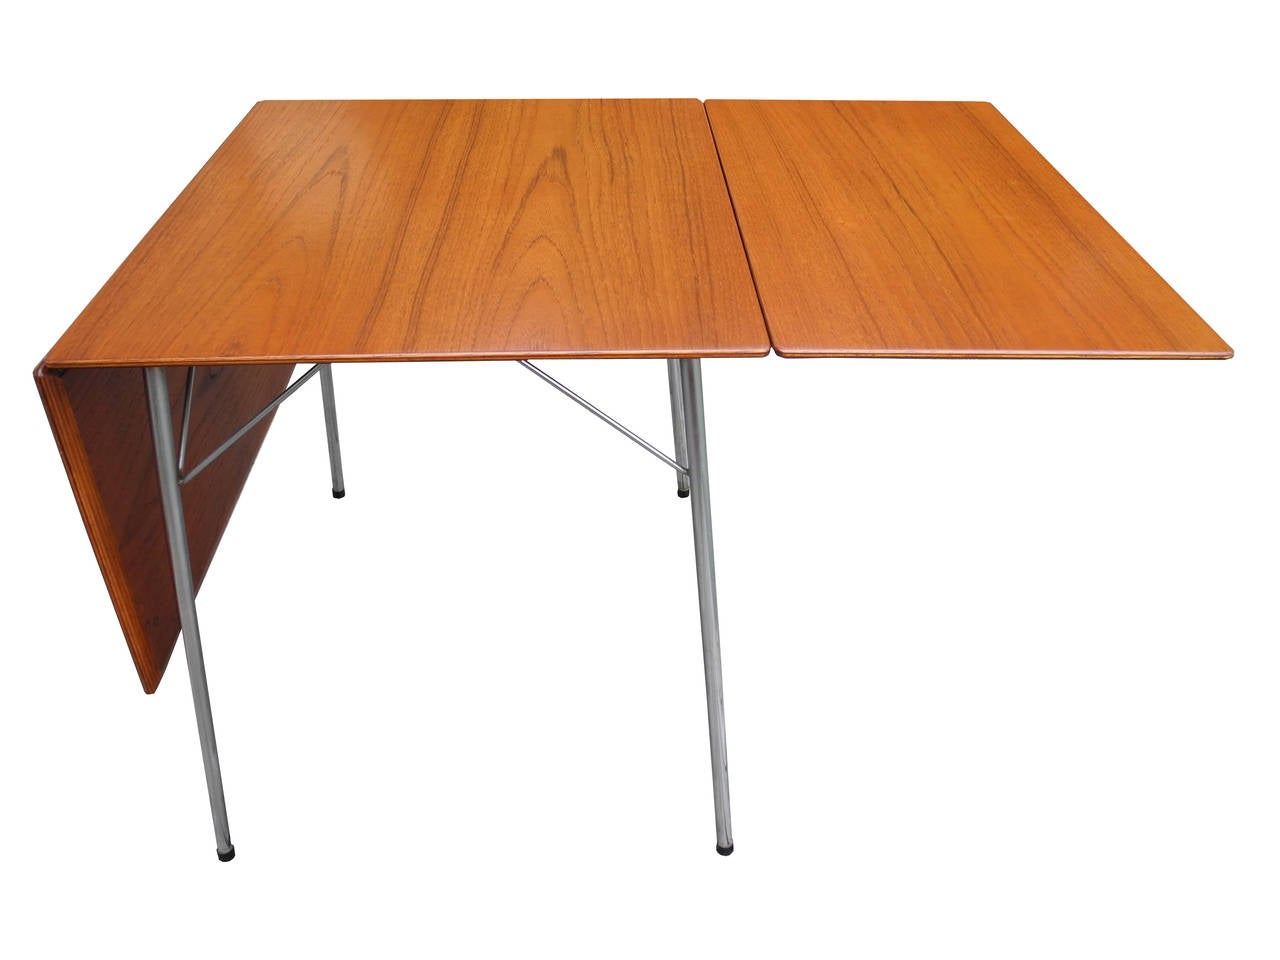 Arne jacobsen folding dining table at 1stdibs for Folding dining room table